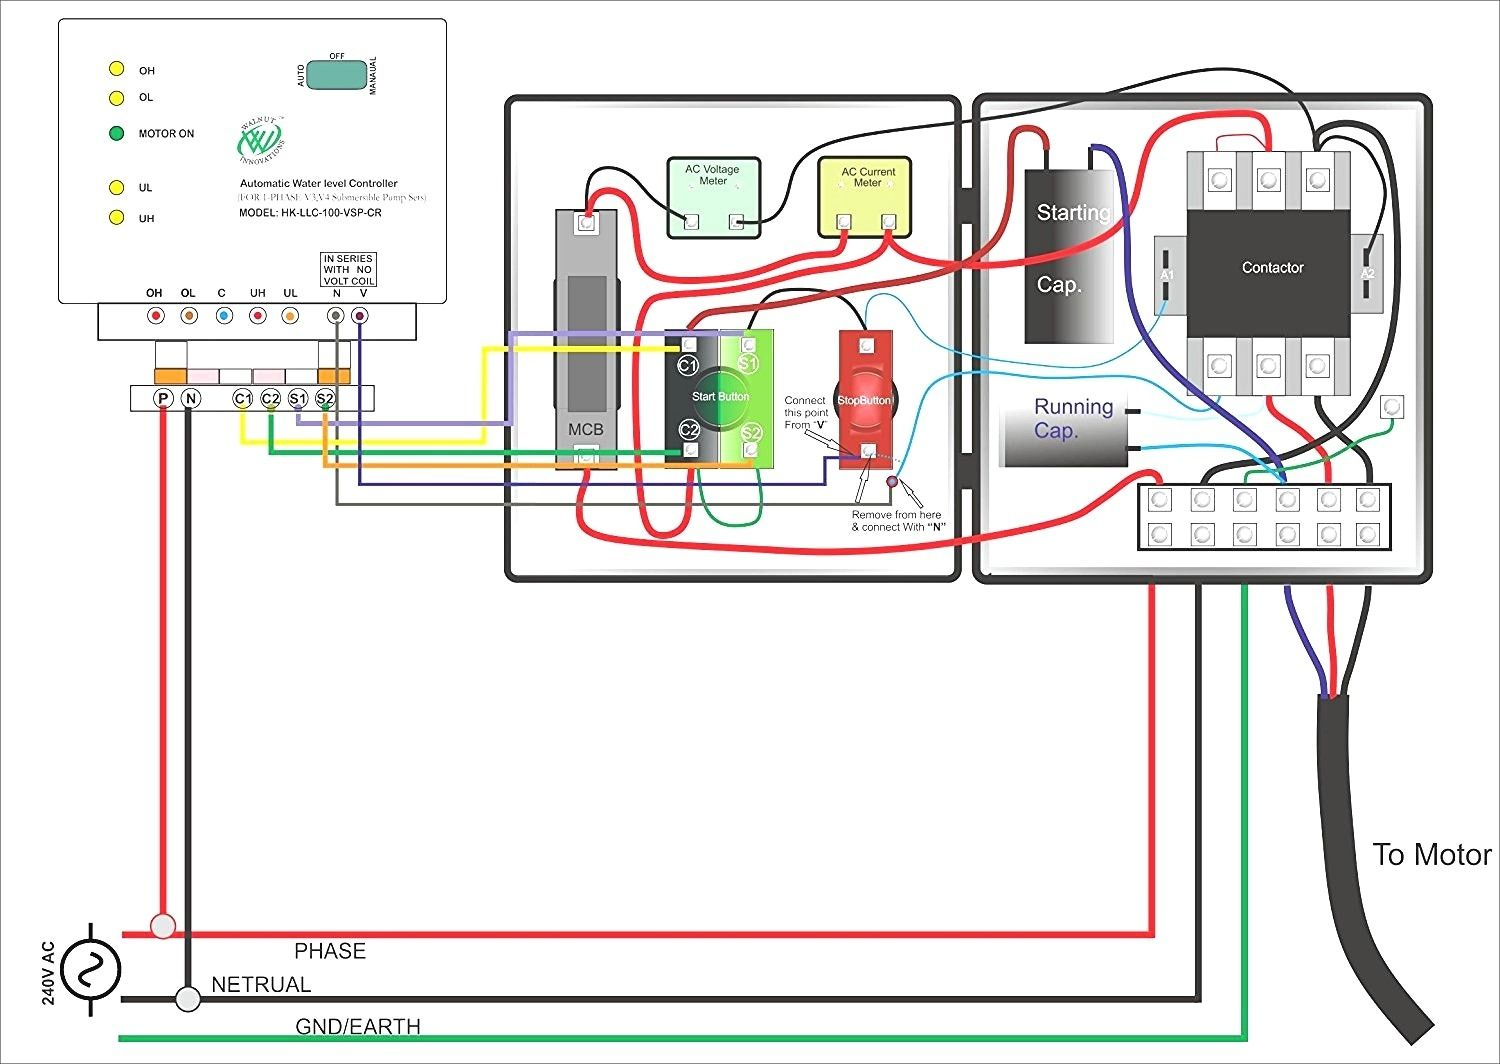 wiring diagram of control panel wiring diagram mega motor control panel wiring mess [ 1500 x 1064 Pixel ]